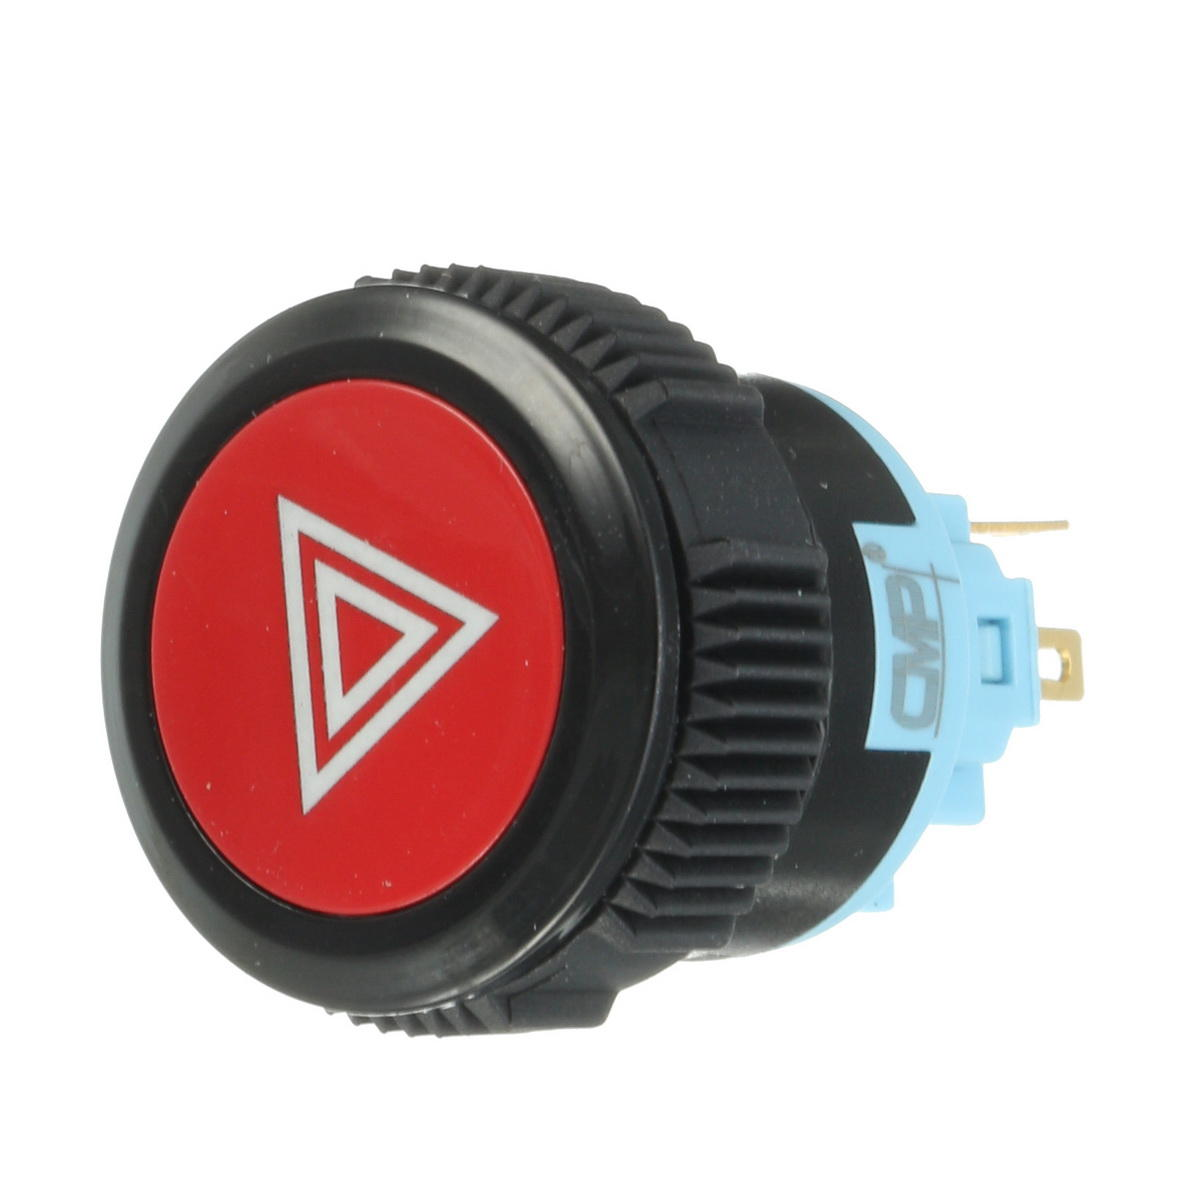 hight resolution of 12v 5 pin led push button switch plastic lamp car horn switch access control switch red cod